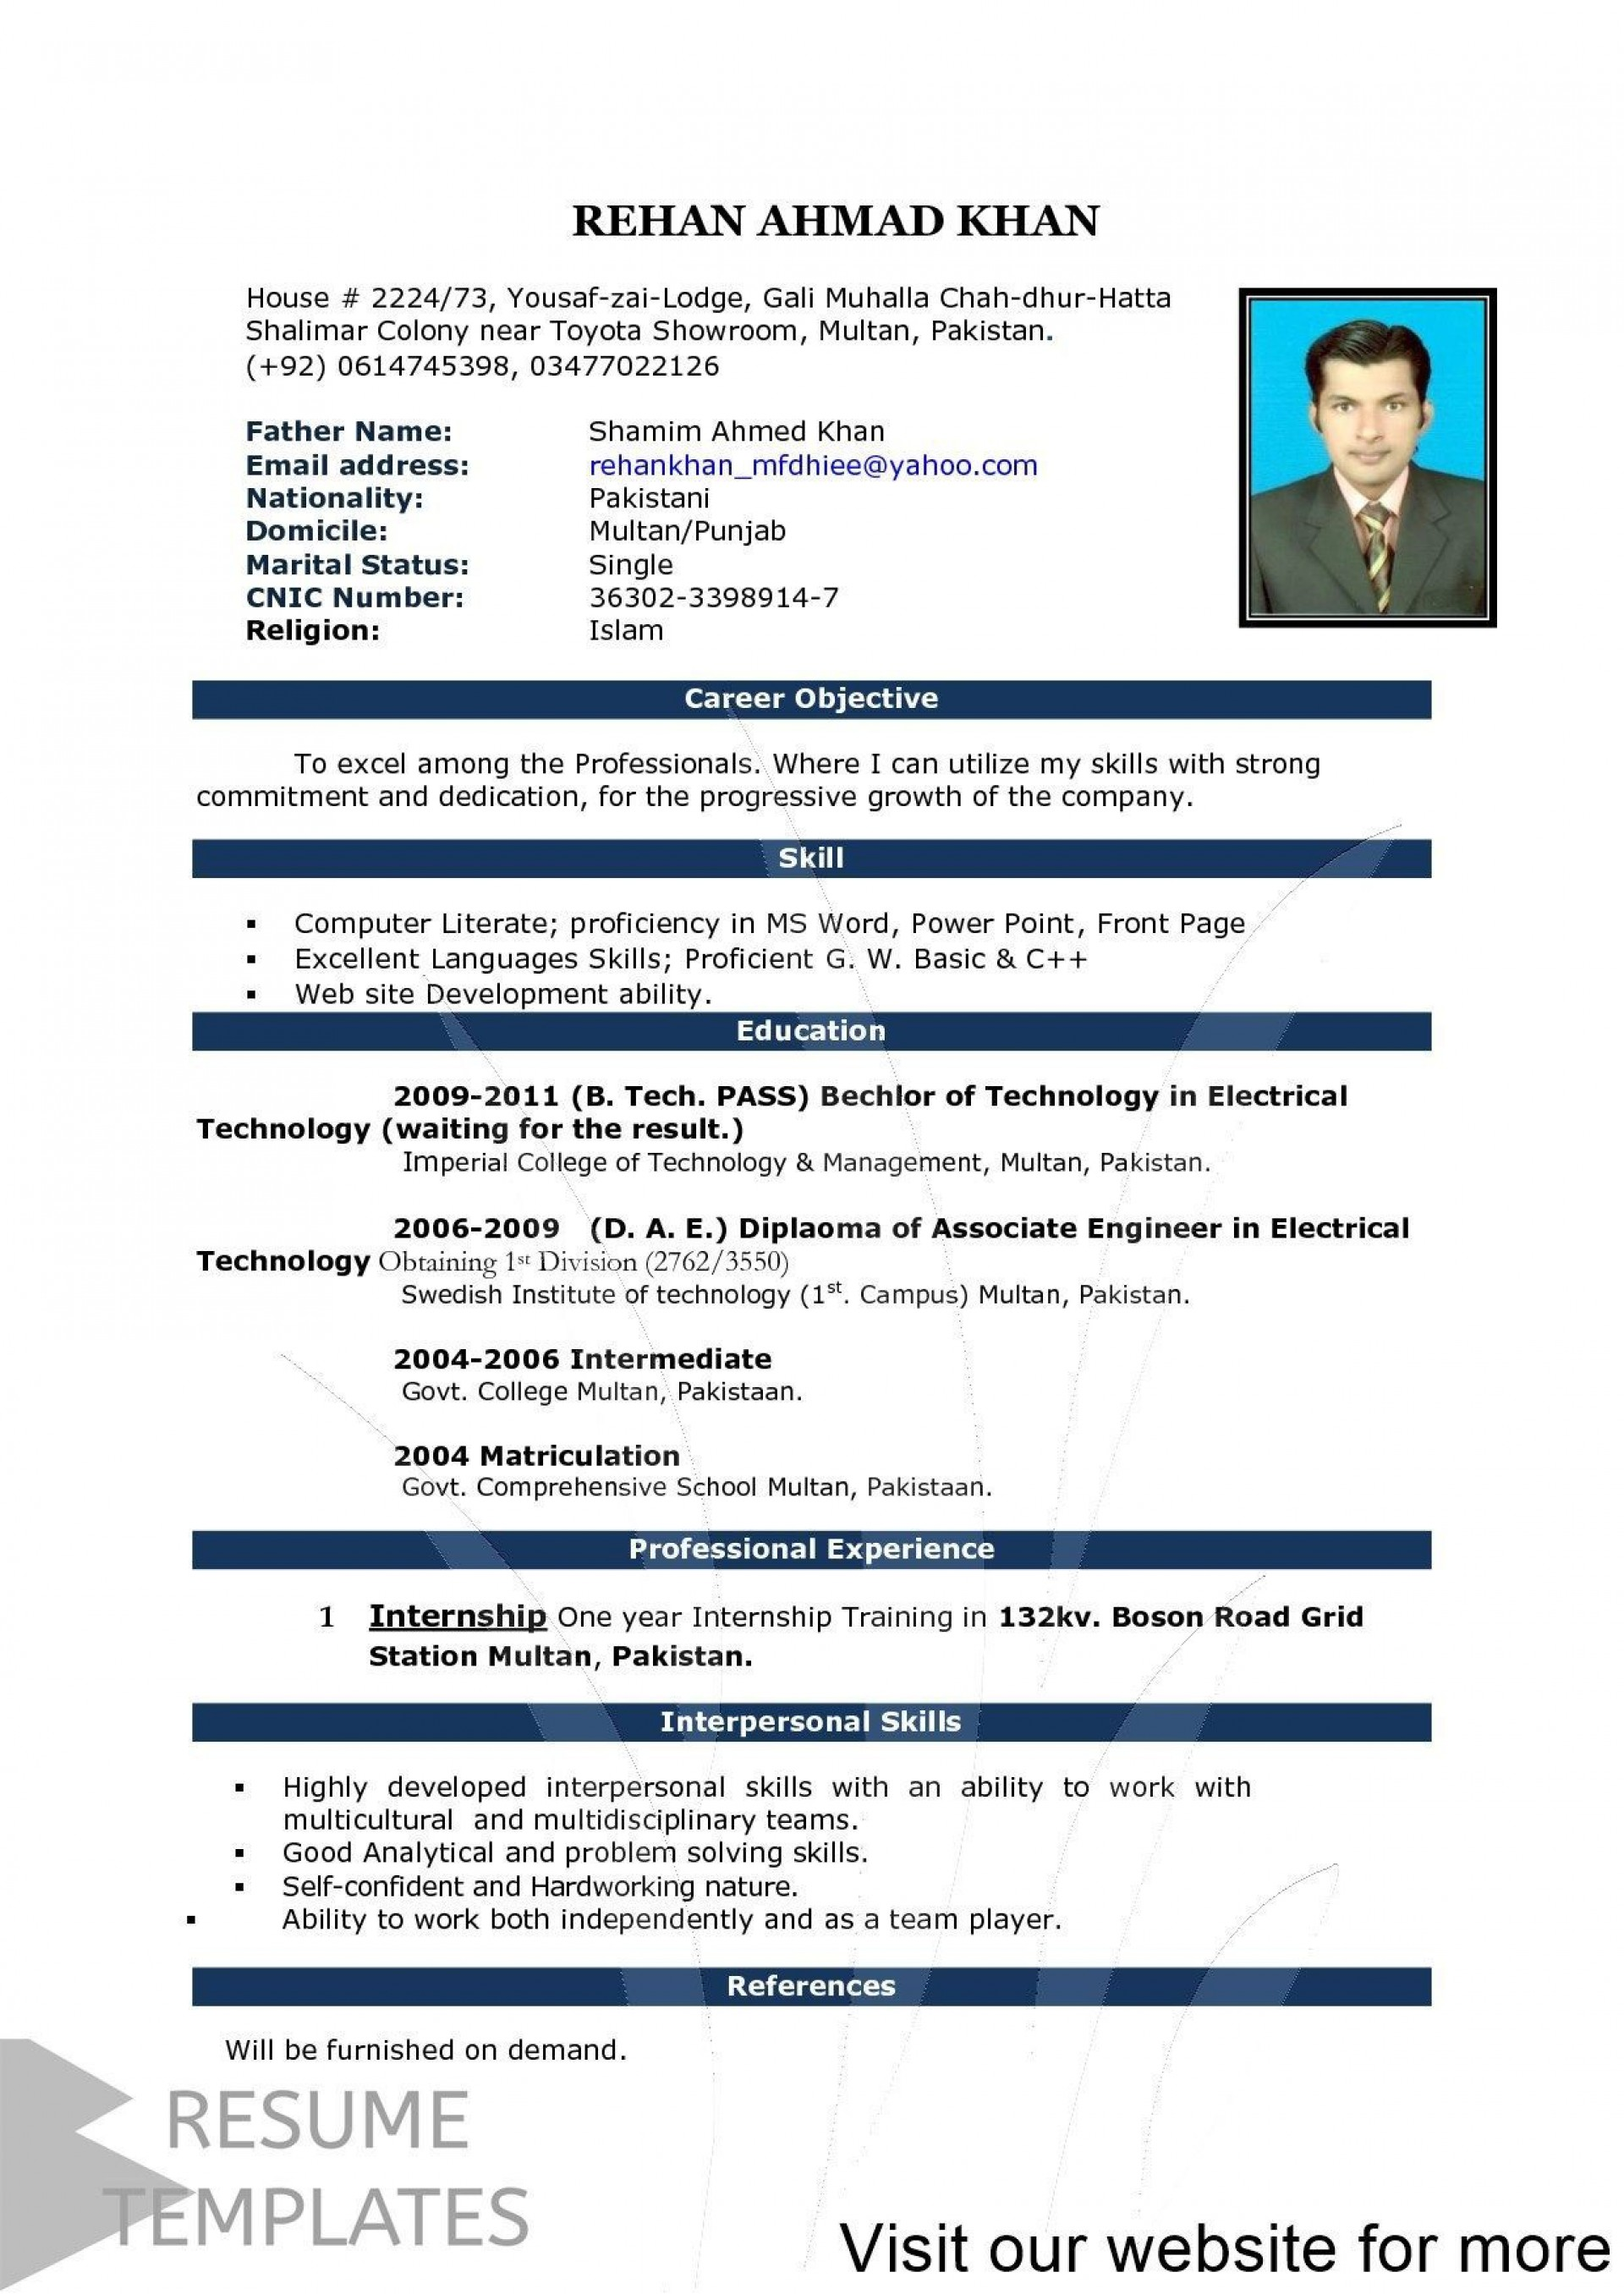 000 Simple How To Create A Resume Template In Word 2020 Inspiration 1920